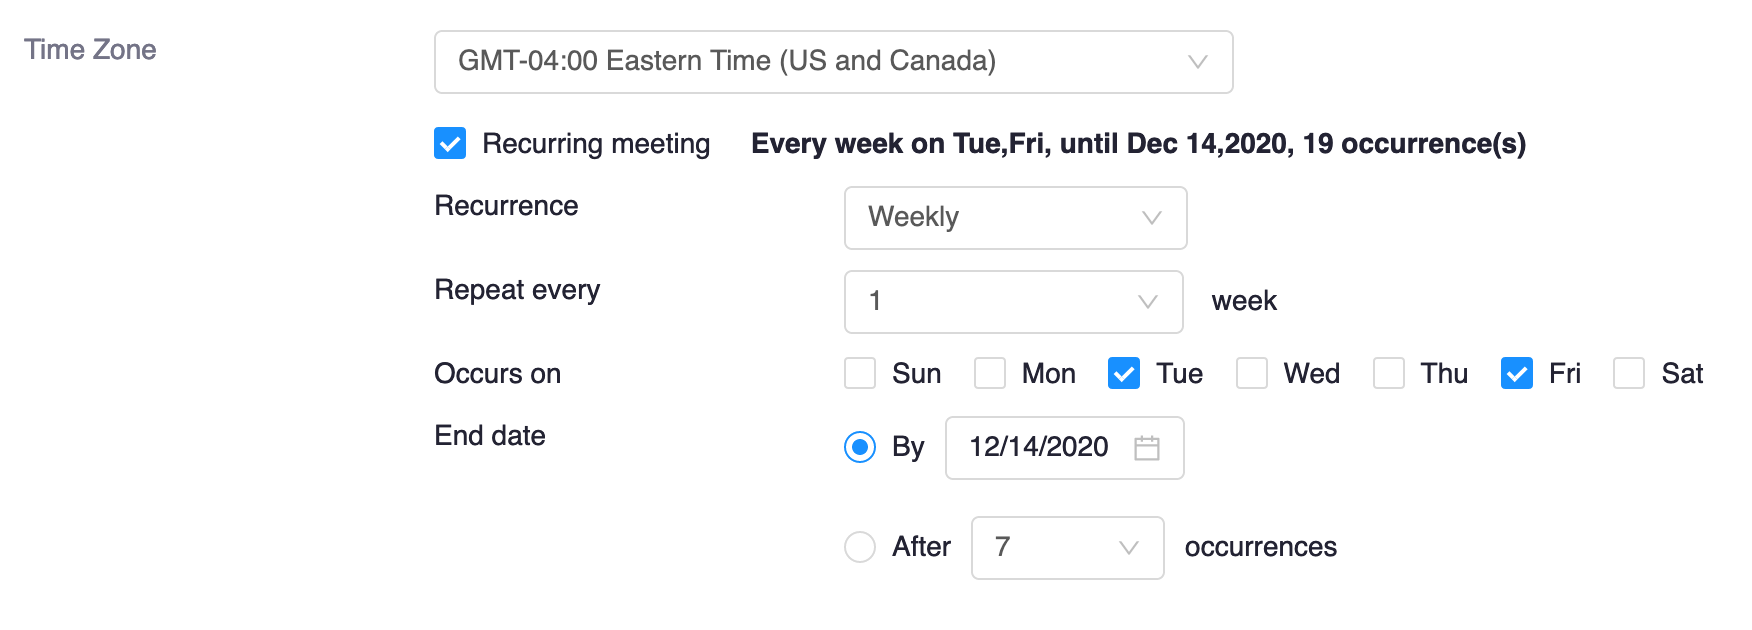 recurring meeting selection options, with weekly recurrence selected, two days of the week selected, and the end date set to the last day of classes